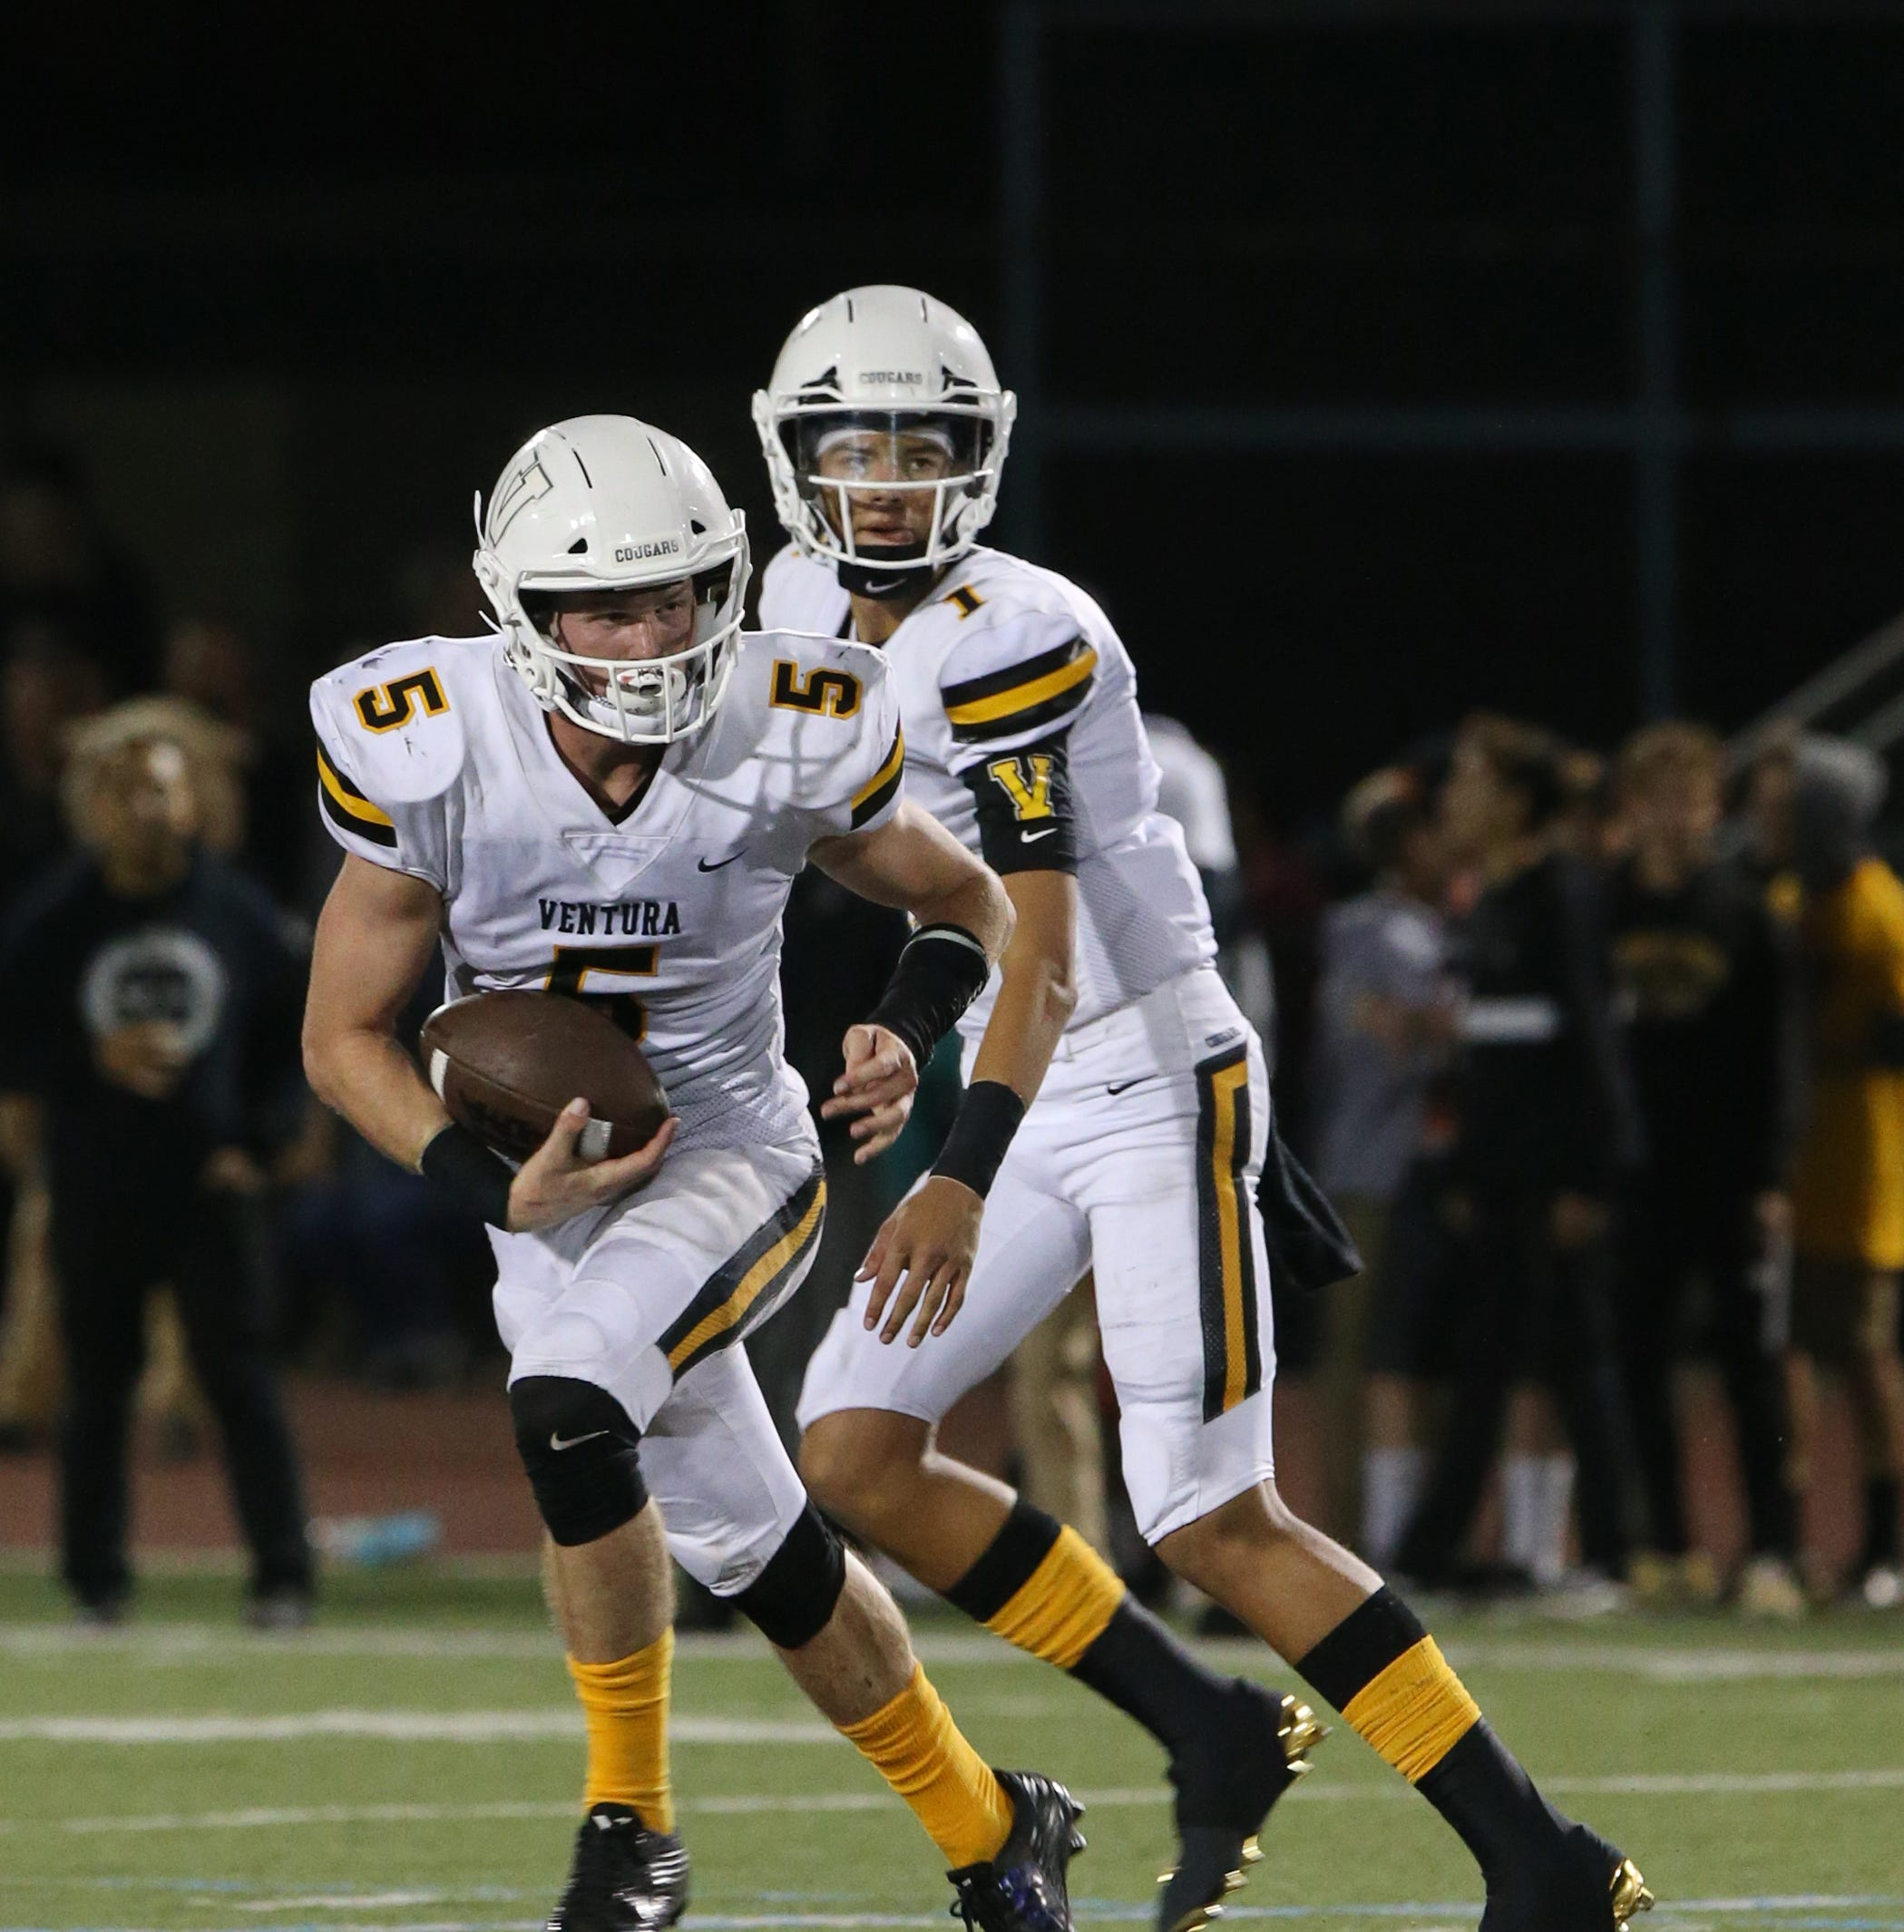 Ventura earns first win of season by beating rival Buena for 9th straight time